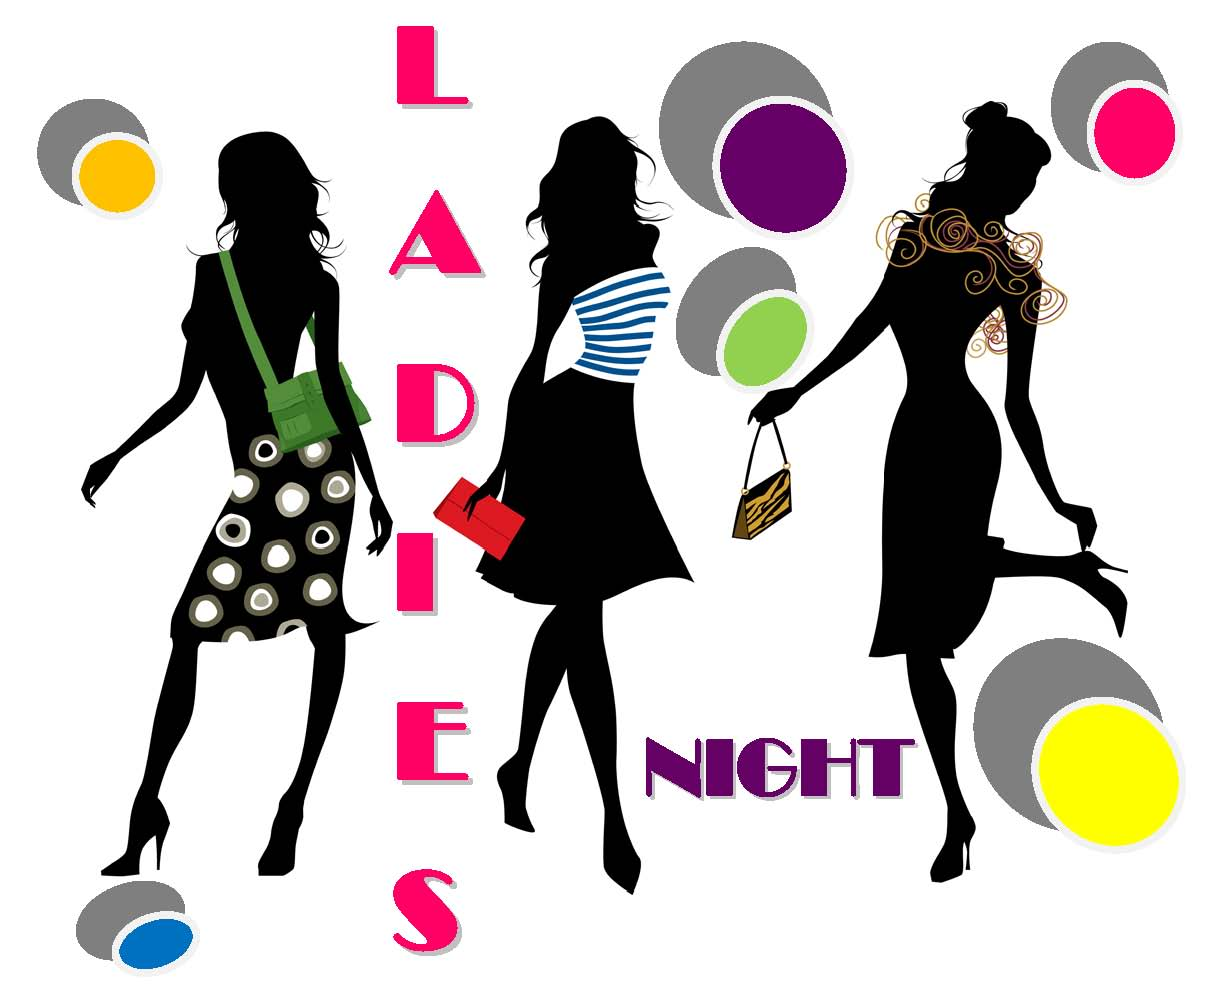 Ladies night clipart 4 » Clipart Station.